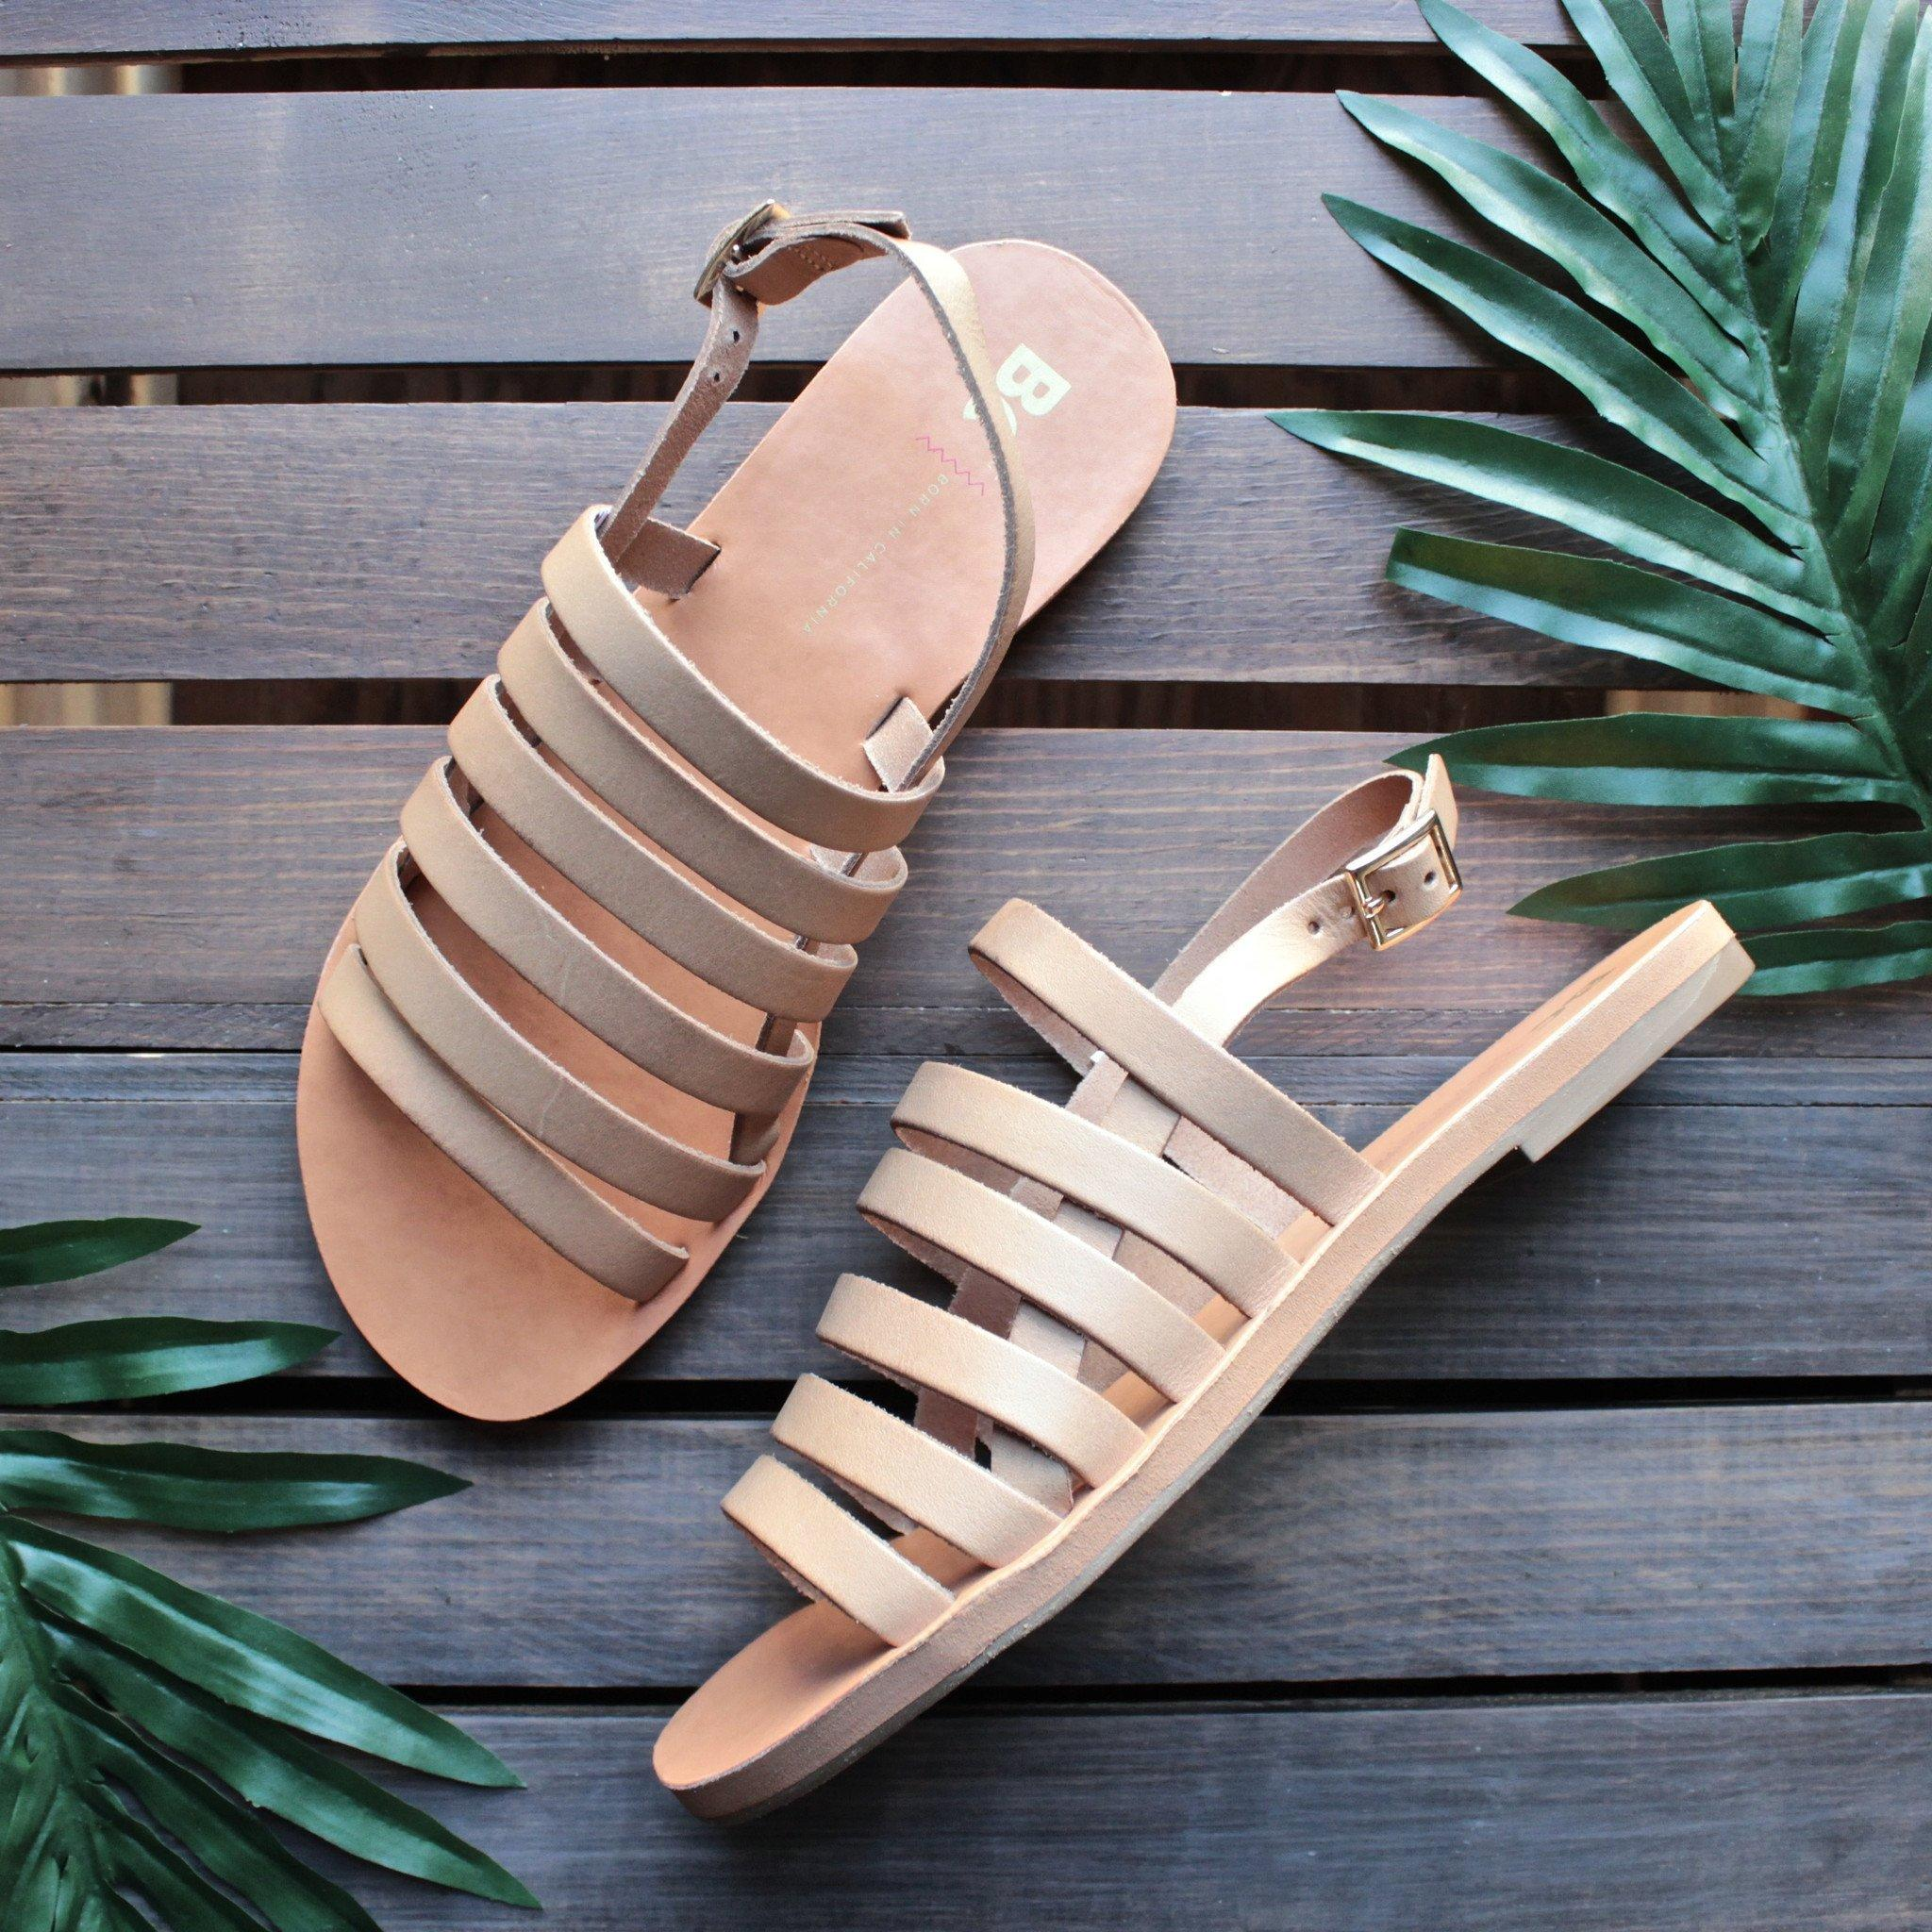 40a28400a52 bc footwear - teacup leather ankle strap from shophearts